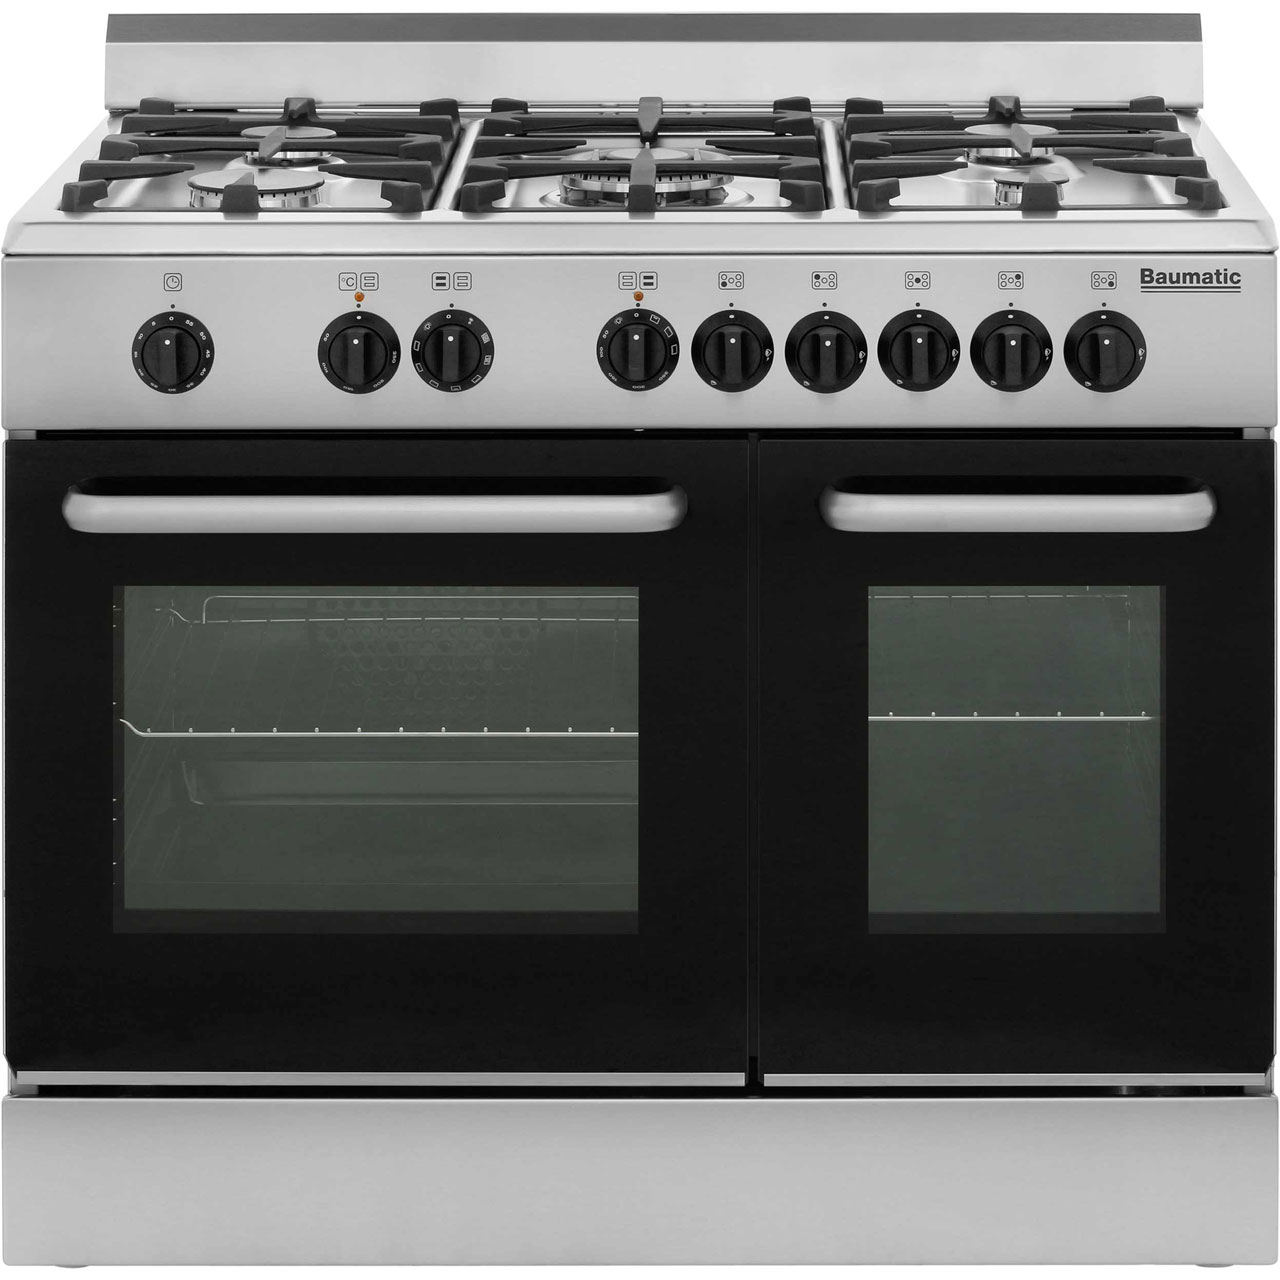 Baumatic BC392.2TCSS Free Standing Range Cooker in Stainless Steel